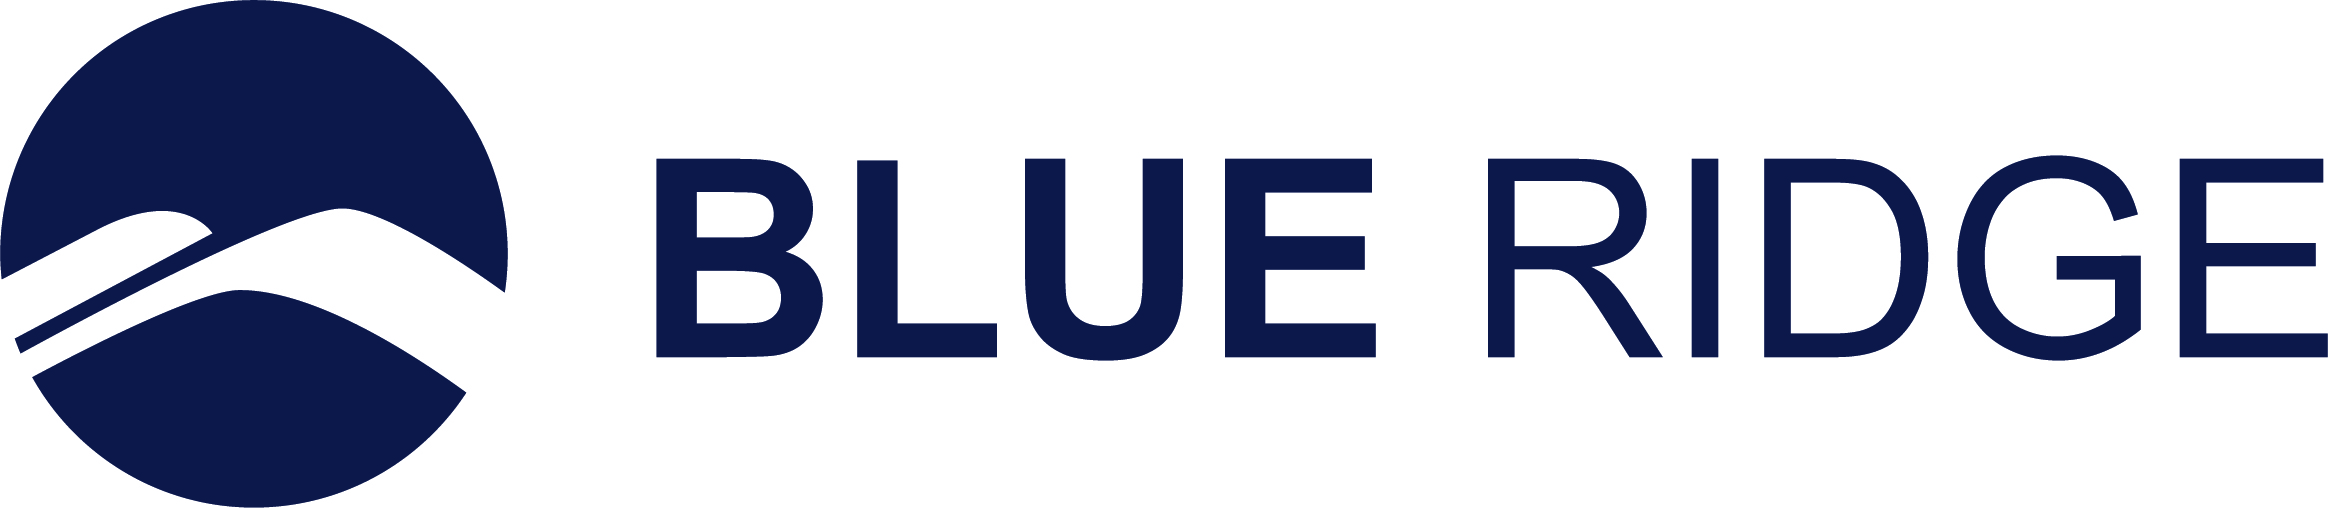 Blue Ridge Pairs Supply Chain Planning with Price Optimization as New Automation Trend